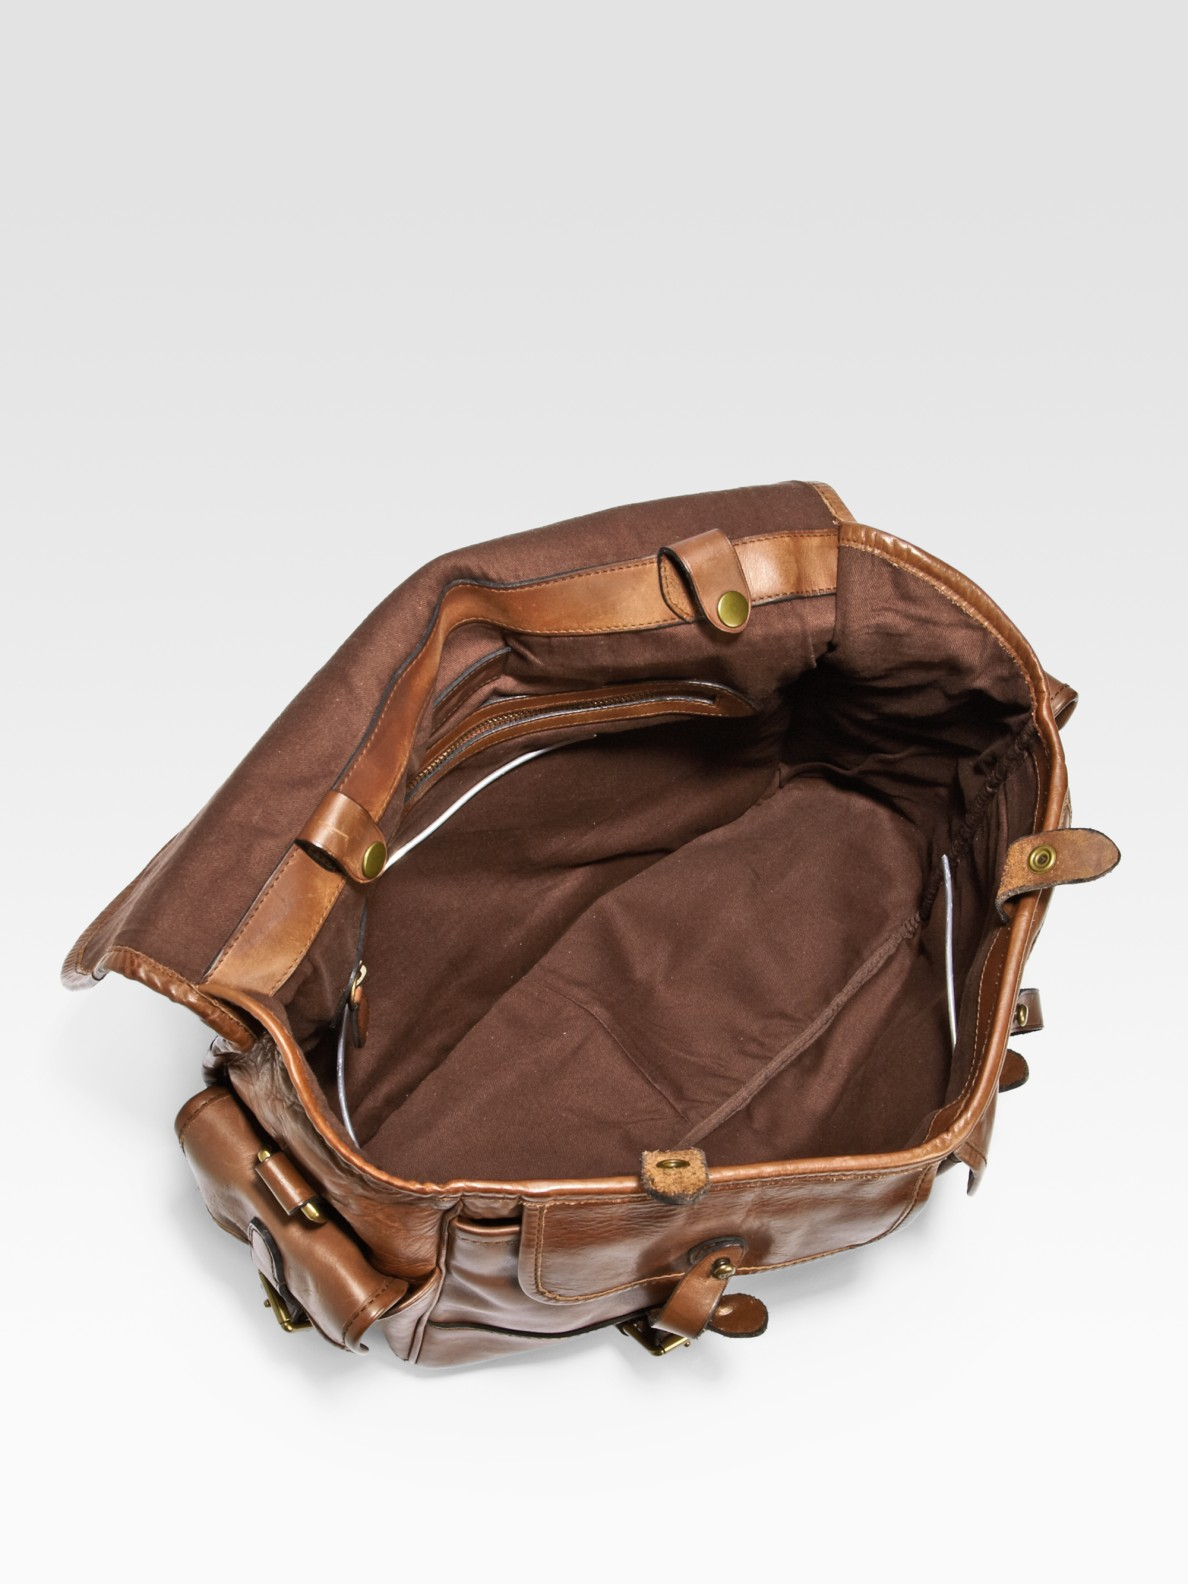 4f06c0b33c25 Lyst - Polo Ralph Lauren Leather Messenger Bag in Brown for Men